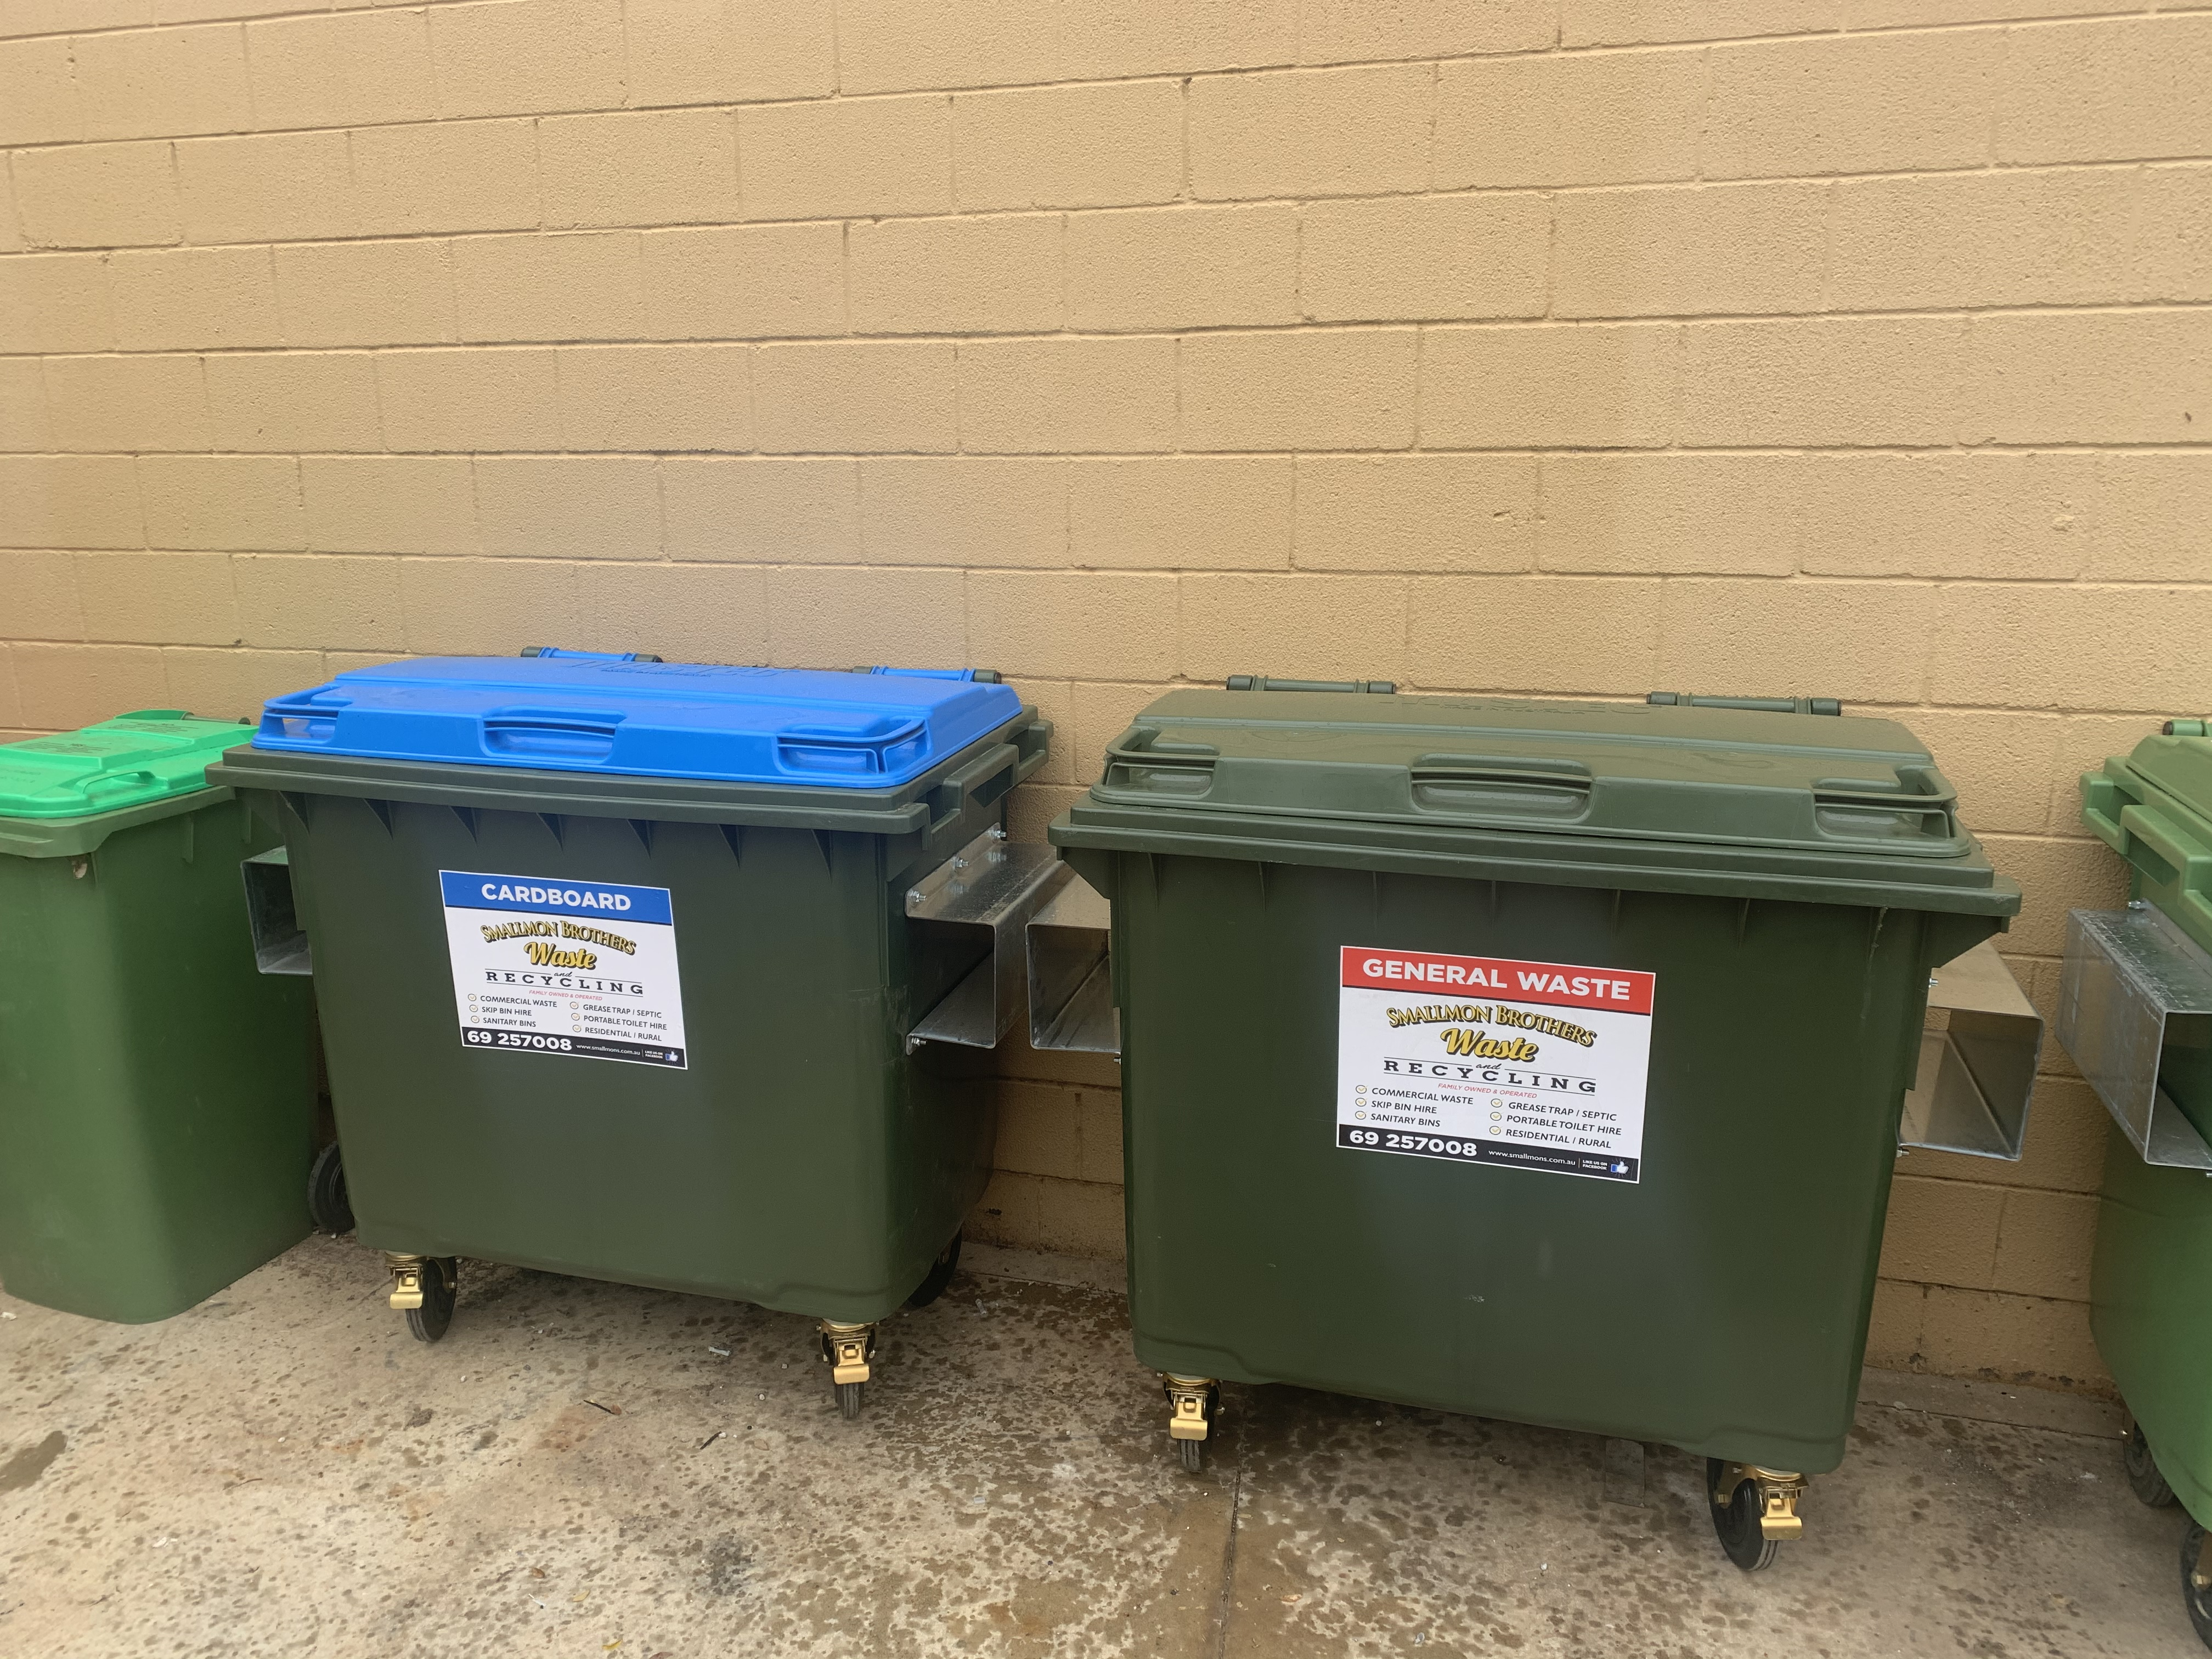 660L General Waste and Cardboard Recycling Bins